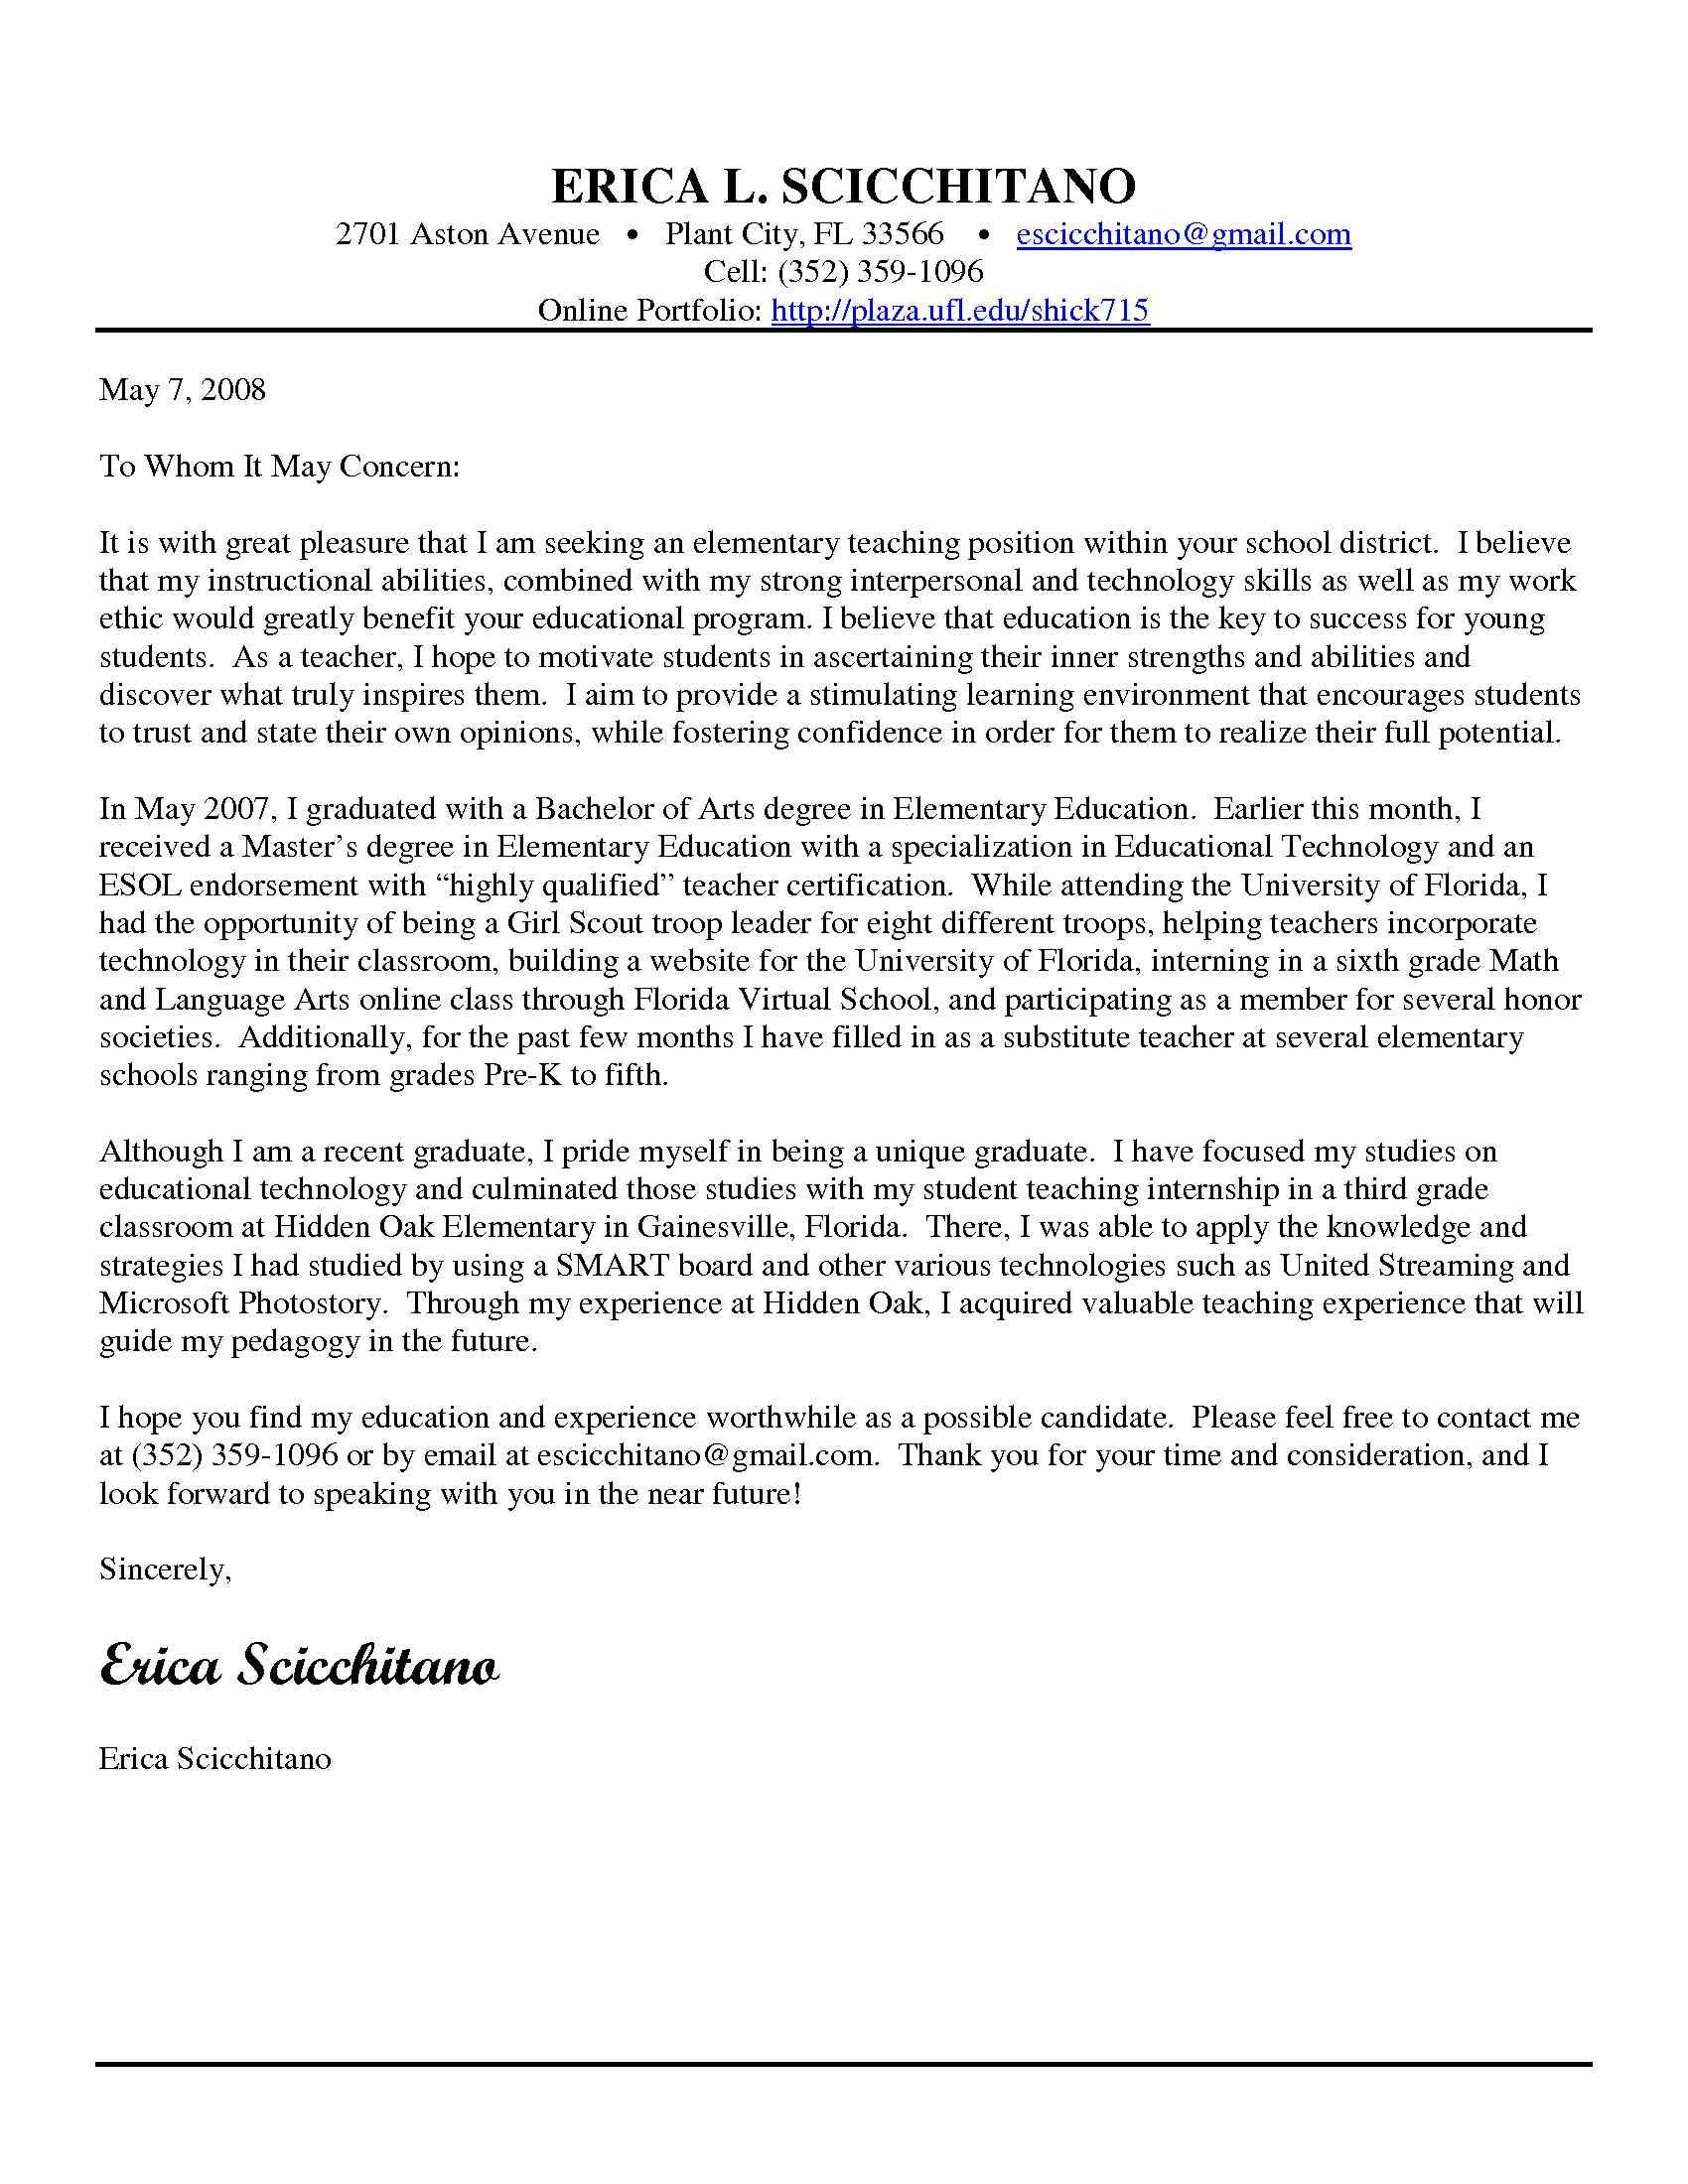 Cover Letter For High School Cover Letter For Teacher Training Sample High School Primary